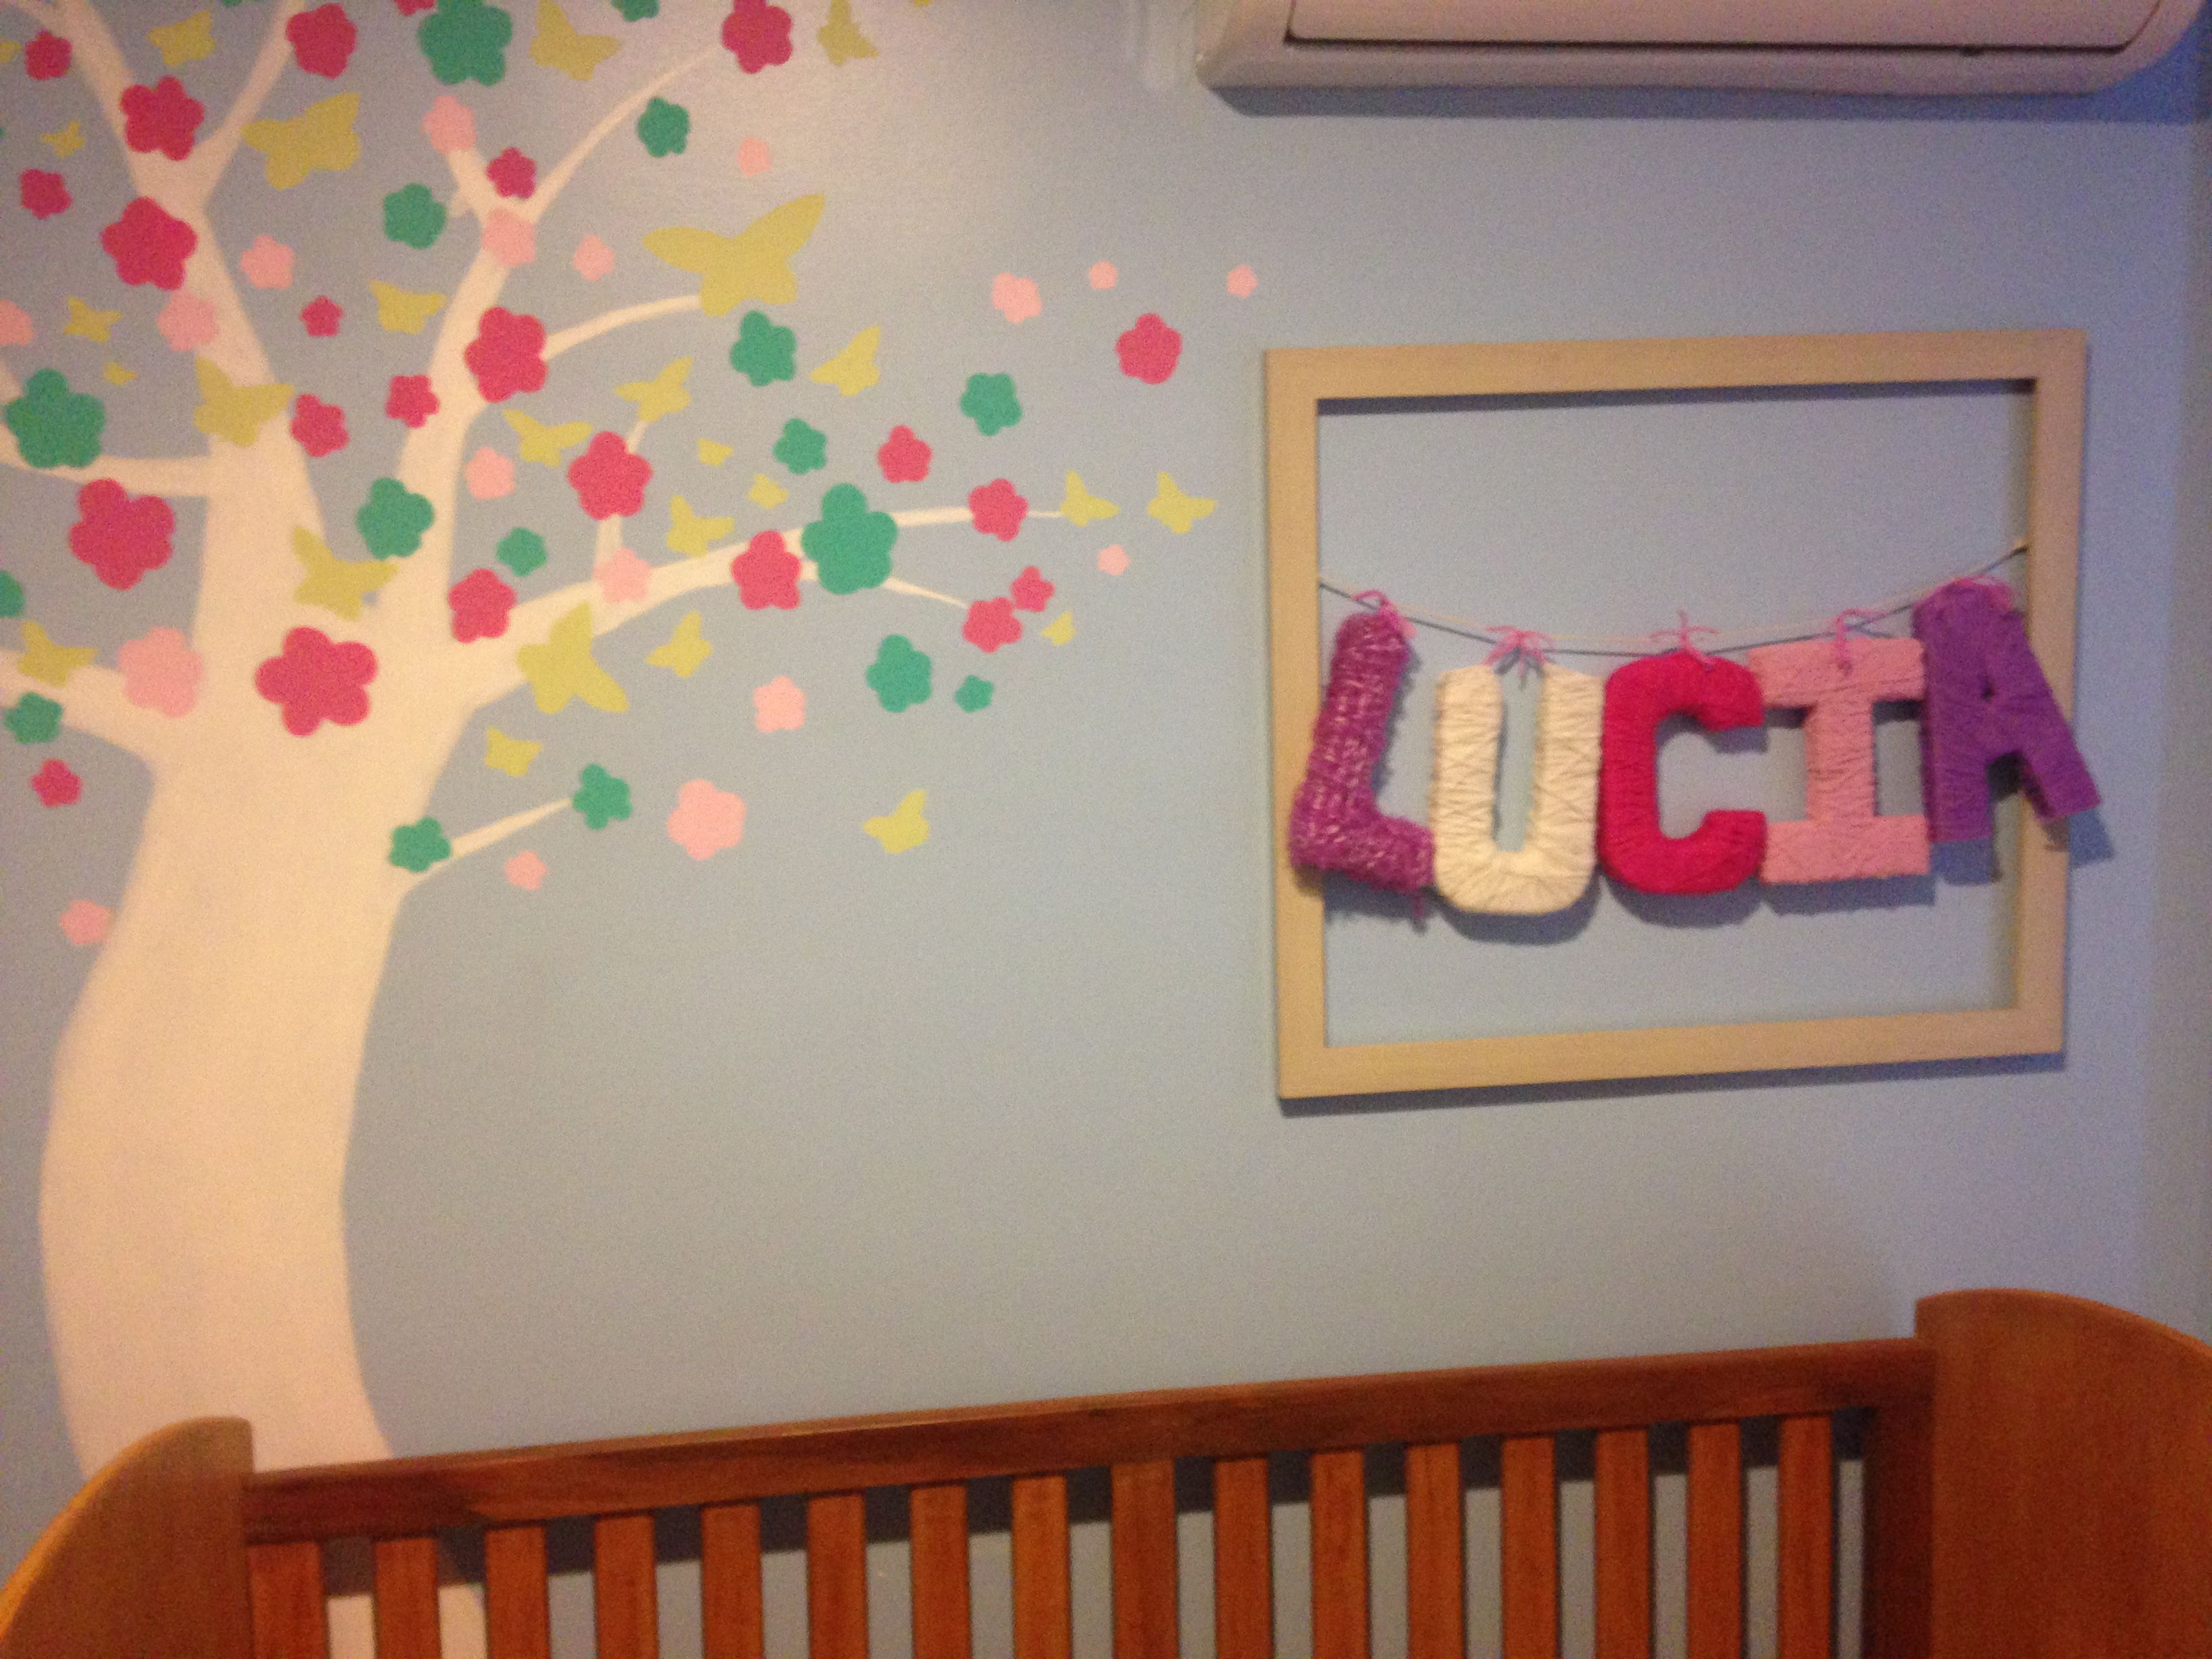 Diy Baby Room Decor Acrylic Painted Tree (Yo Can Use